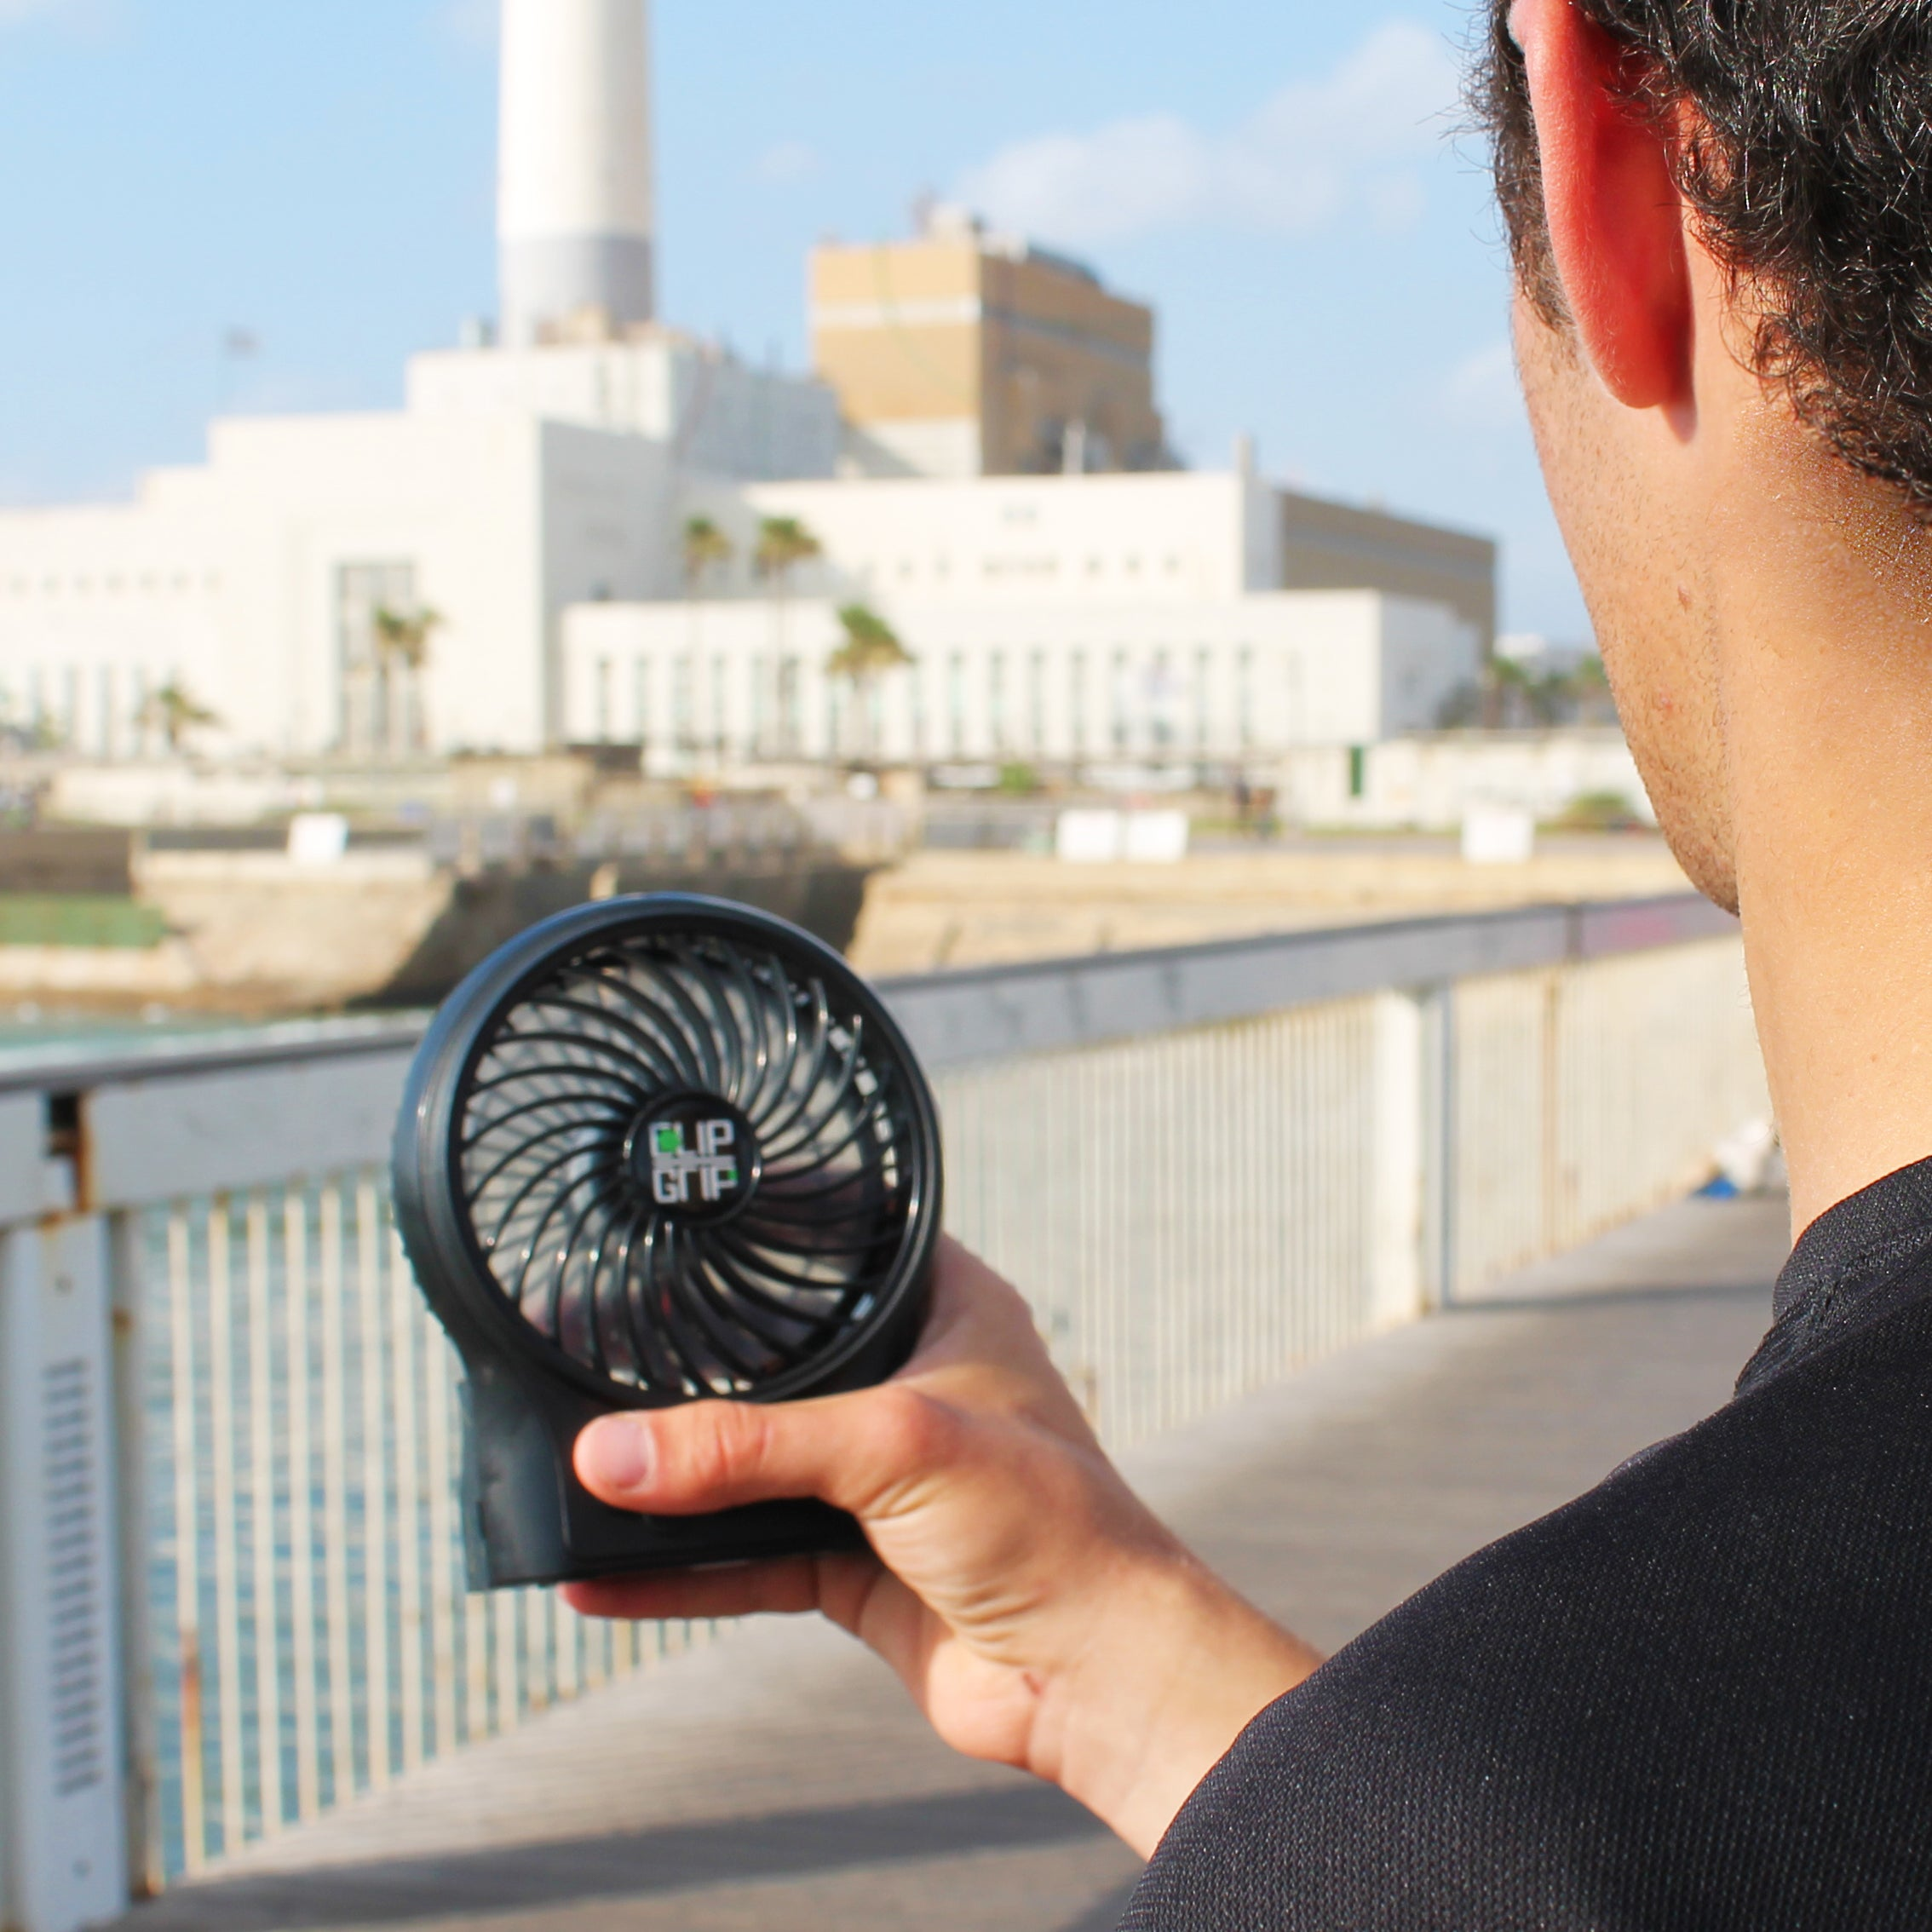 In some heatwaves, fans do more harm than good